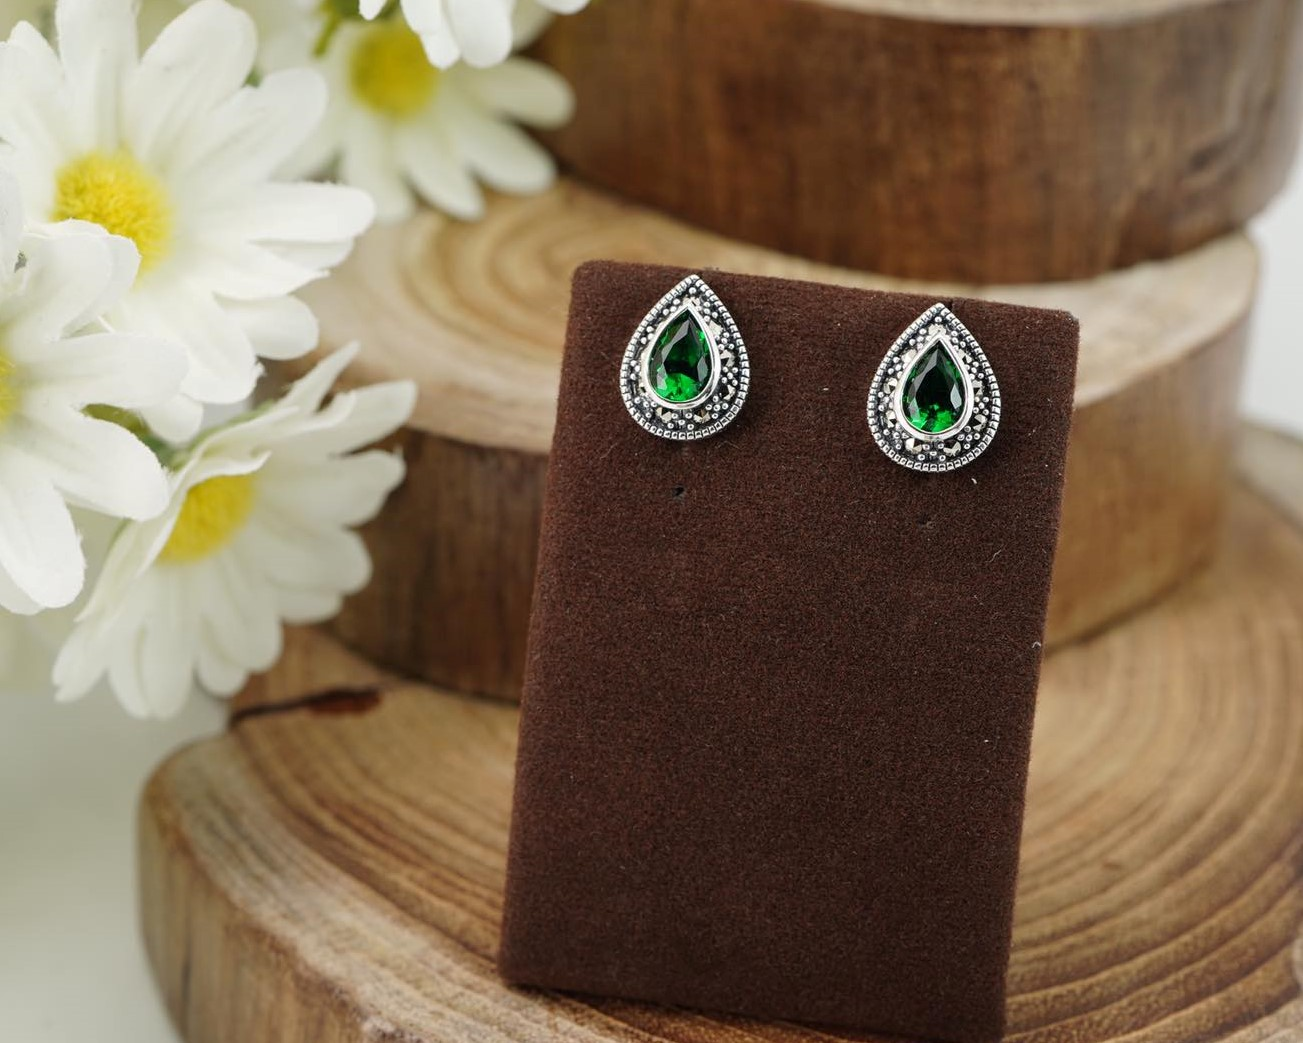 Elegant Teardrop Set with Brilliant cut Emerald and Sparkling Marcasite Stud Earrings Image